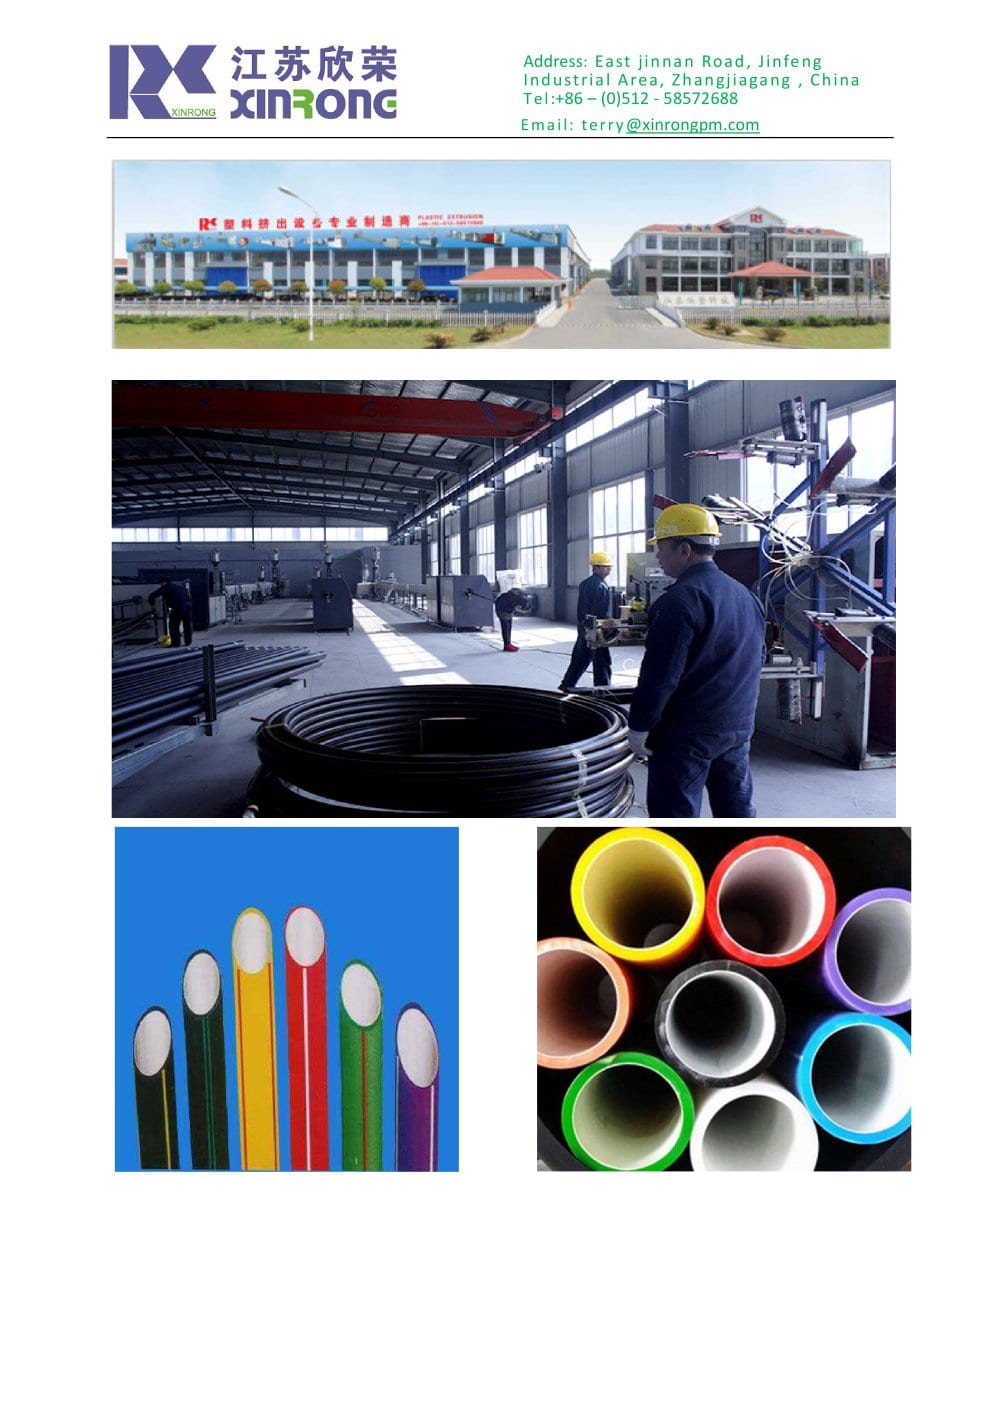 composite-pipe-extrusion-line/pesilicon-pipe-production-line/ - 11 Pages  sc 1 st  Catalogues Directindustry & composite-pipe-extrusion-line/pesilicon-pipe-production-line ...